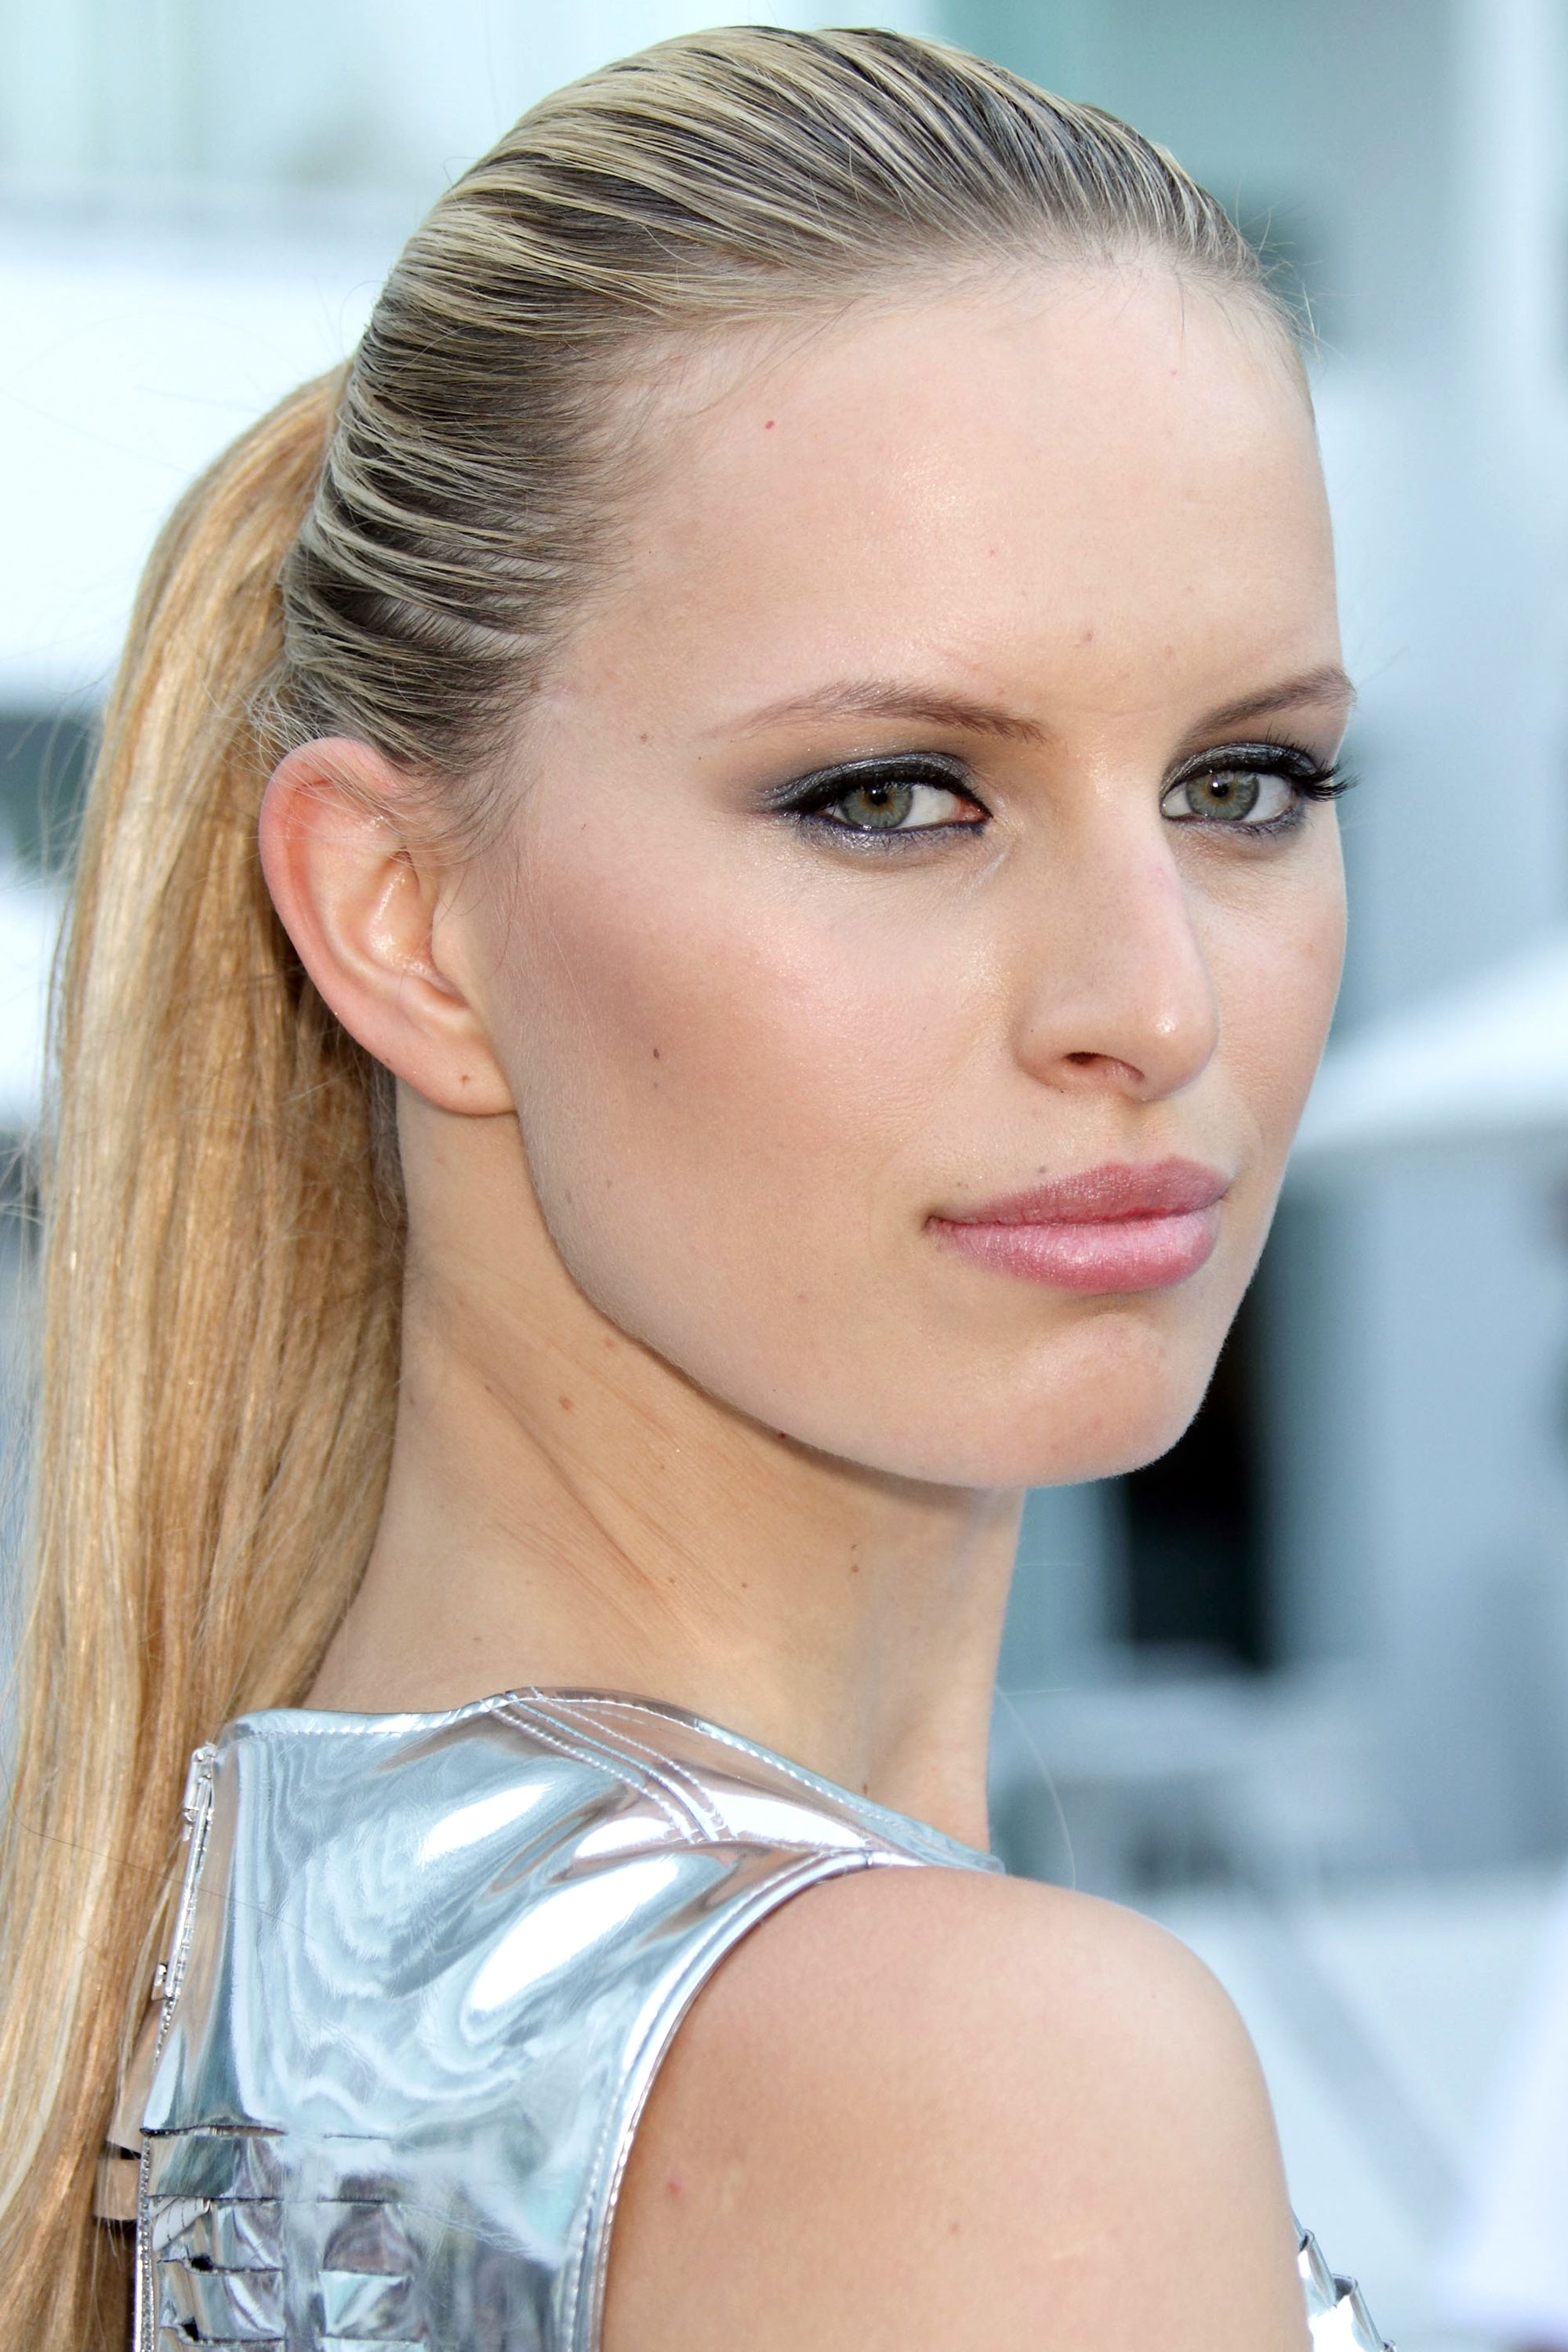 20 New Ways To Wear A Ponytail – Best Celebrity Ponytails Of 2017 Regarding Preferred Pebbles Pony Hairstyles (View 12 of 20)